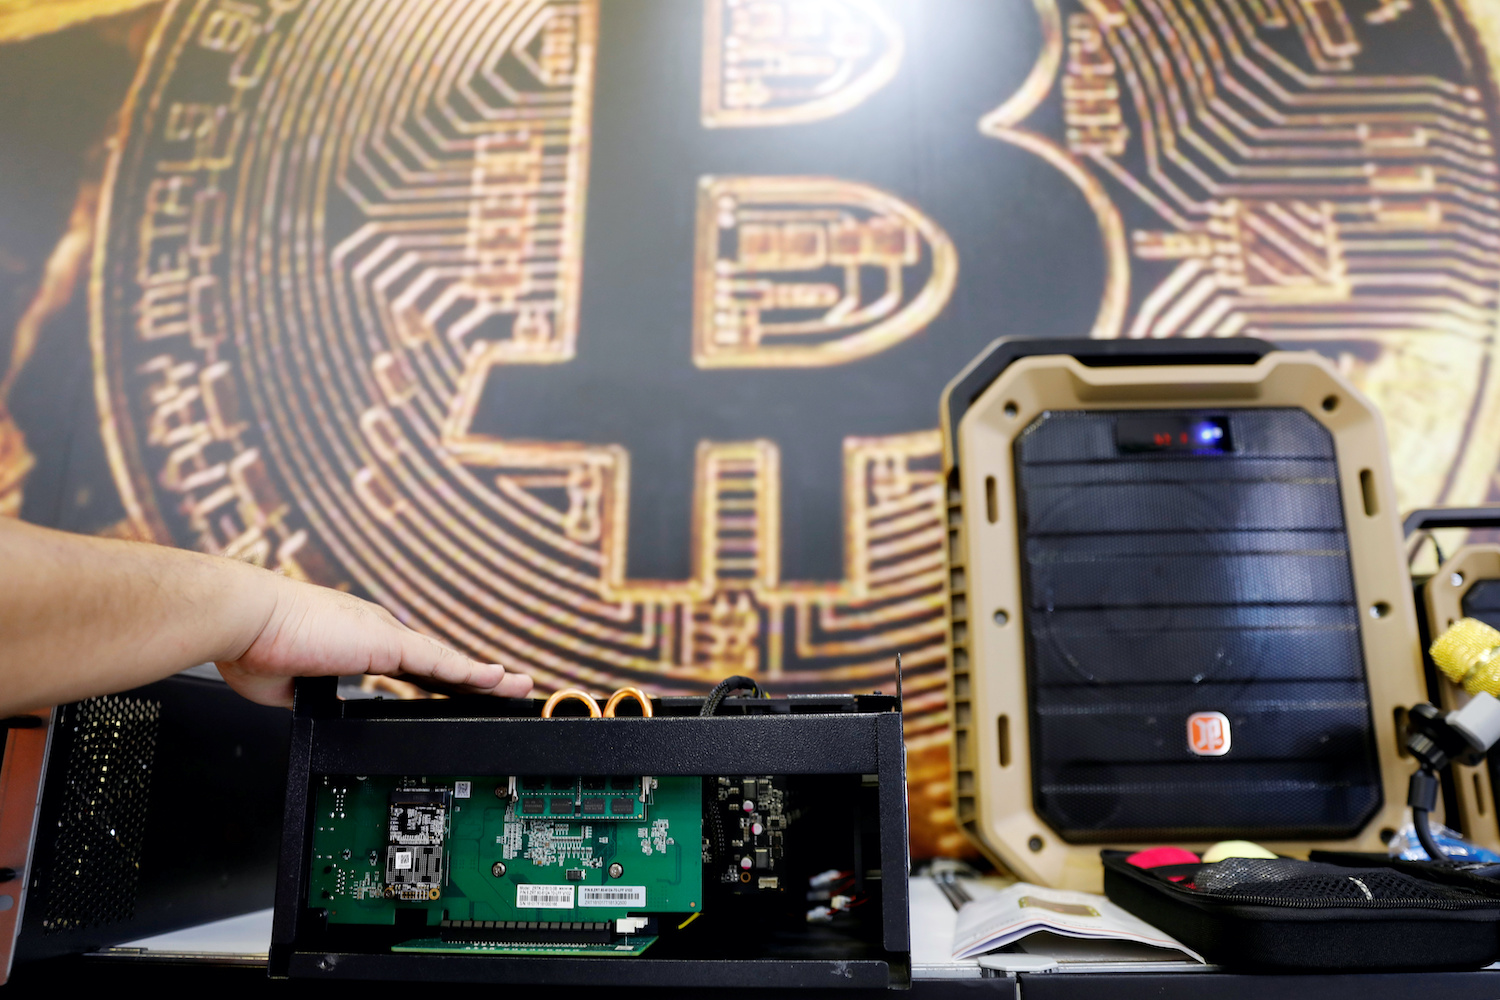 Bitcoin plunges on China mining fears and concern about regulation